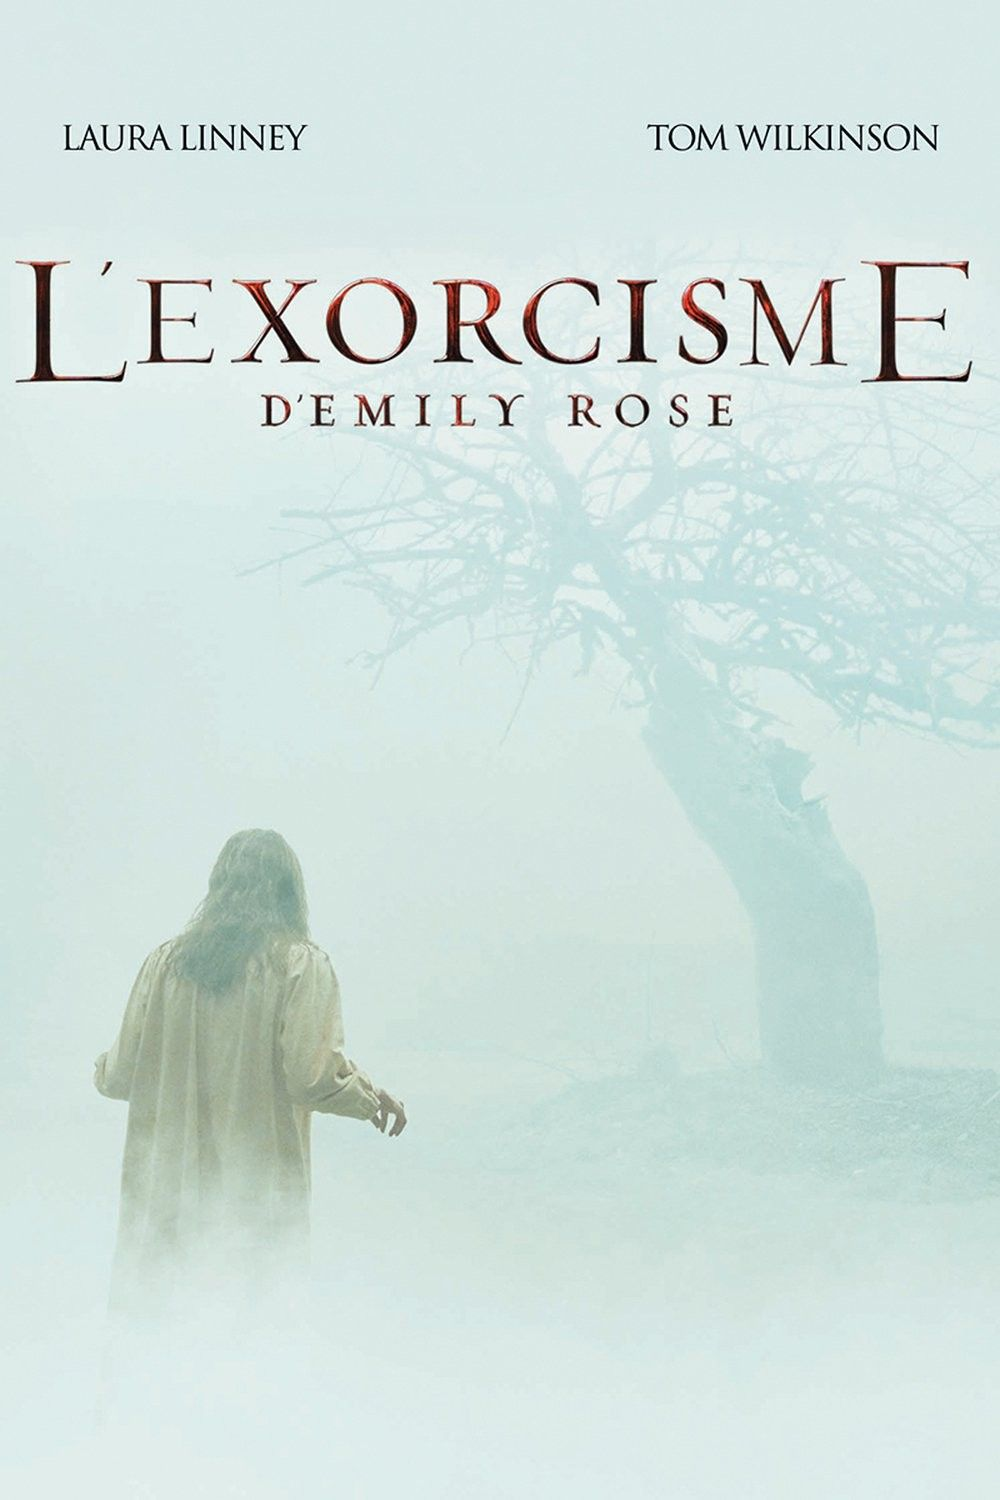 lexorcisme demily rose